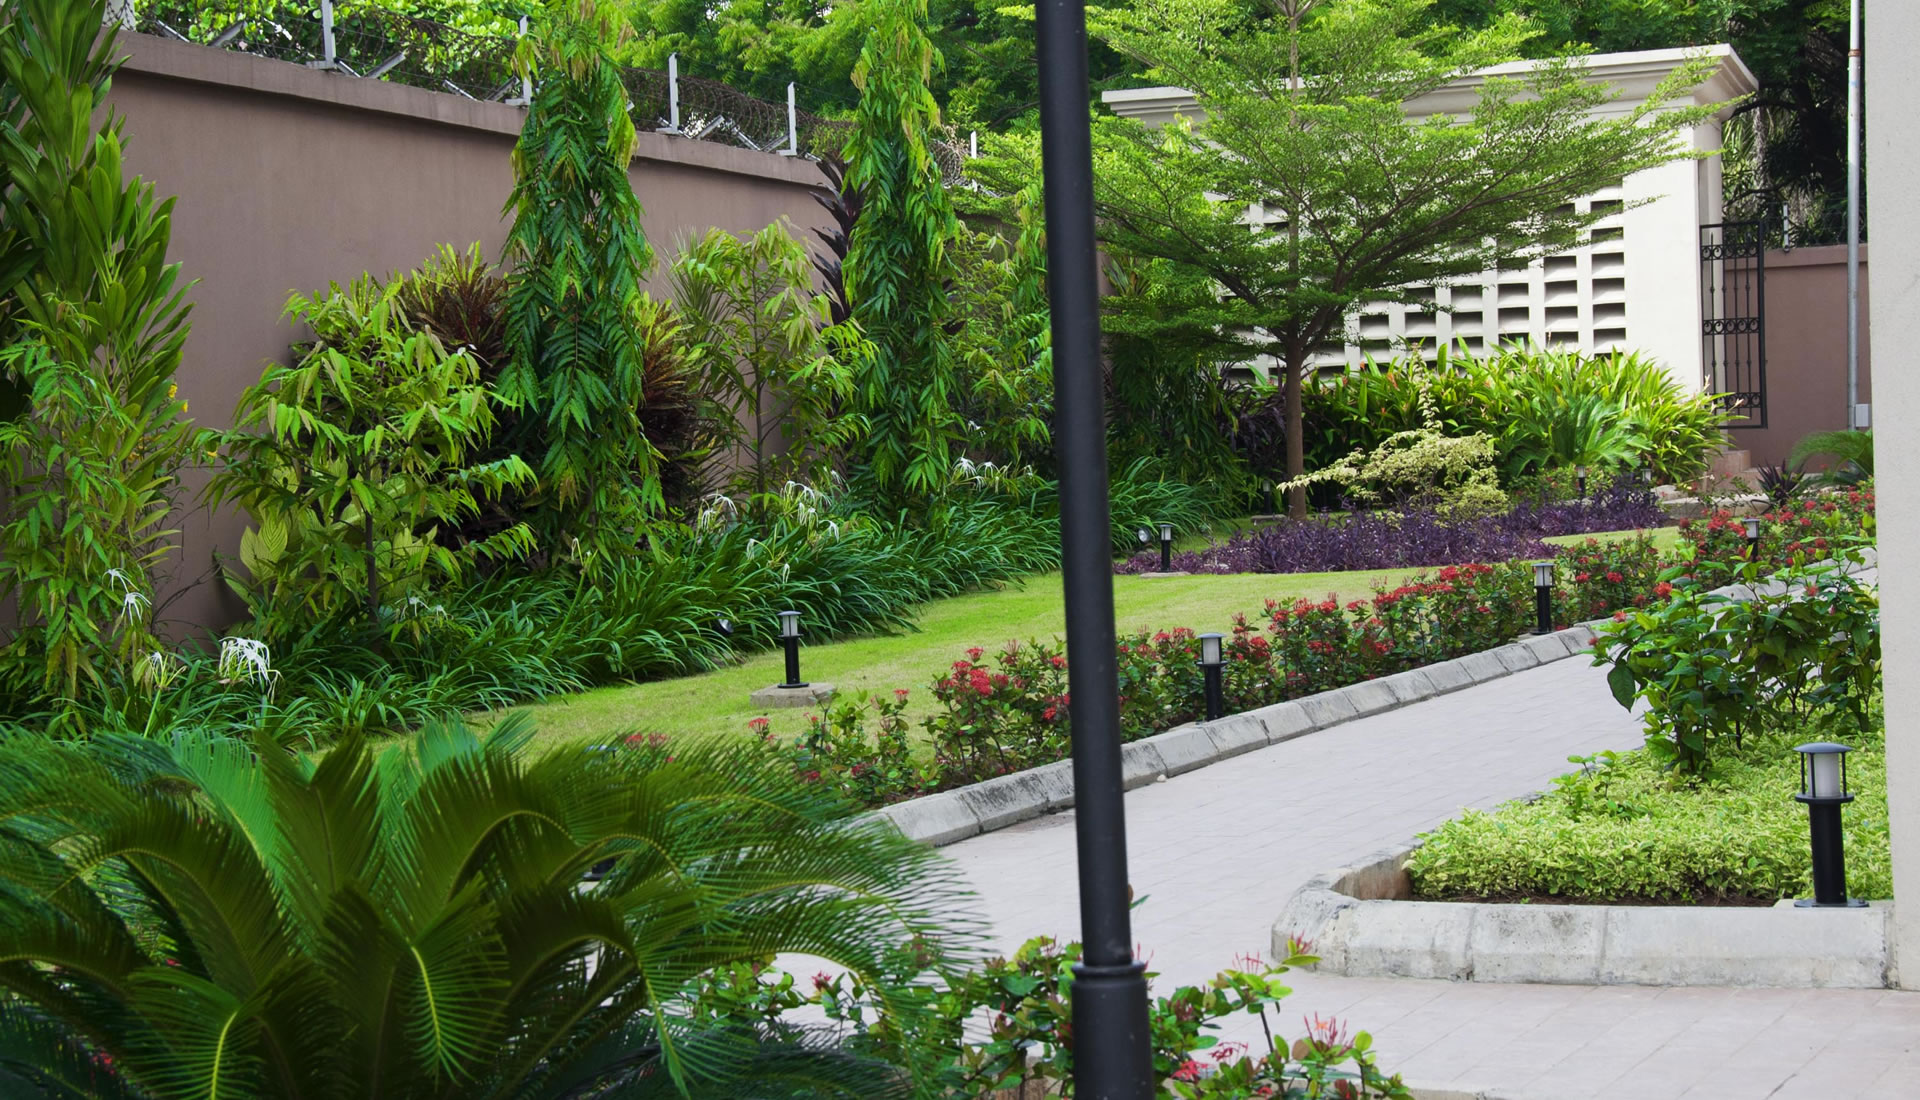 Omargardens | Horticulture and Garden Services in Nigeria on landscape idea for the front of your house, front walkways to house, frontrunners landscape designs house, landscaping near house,